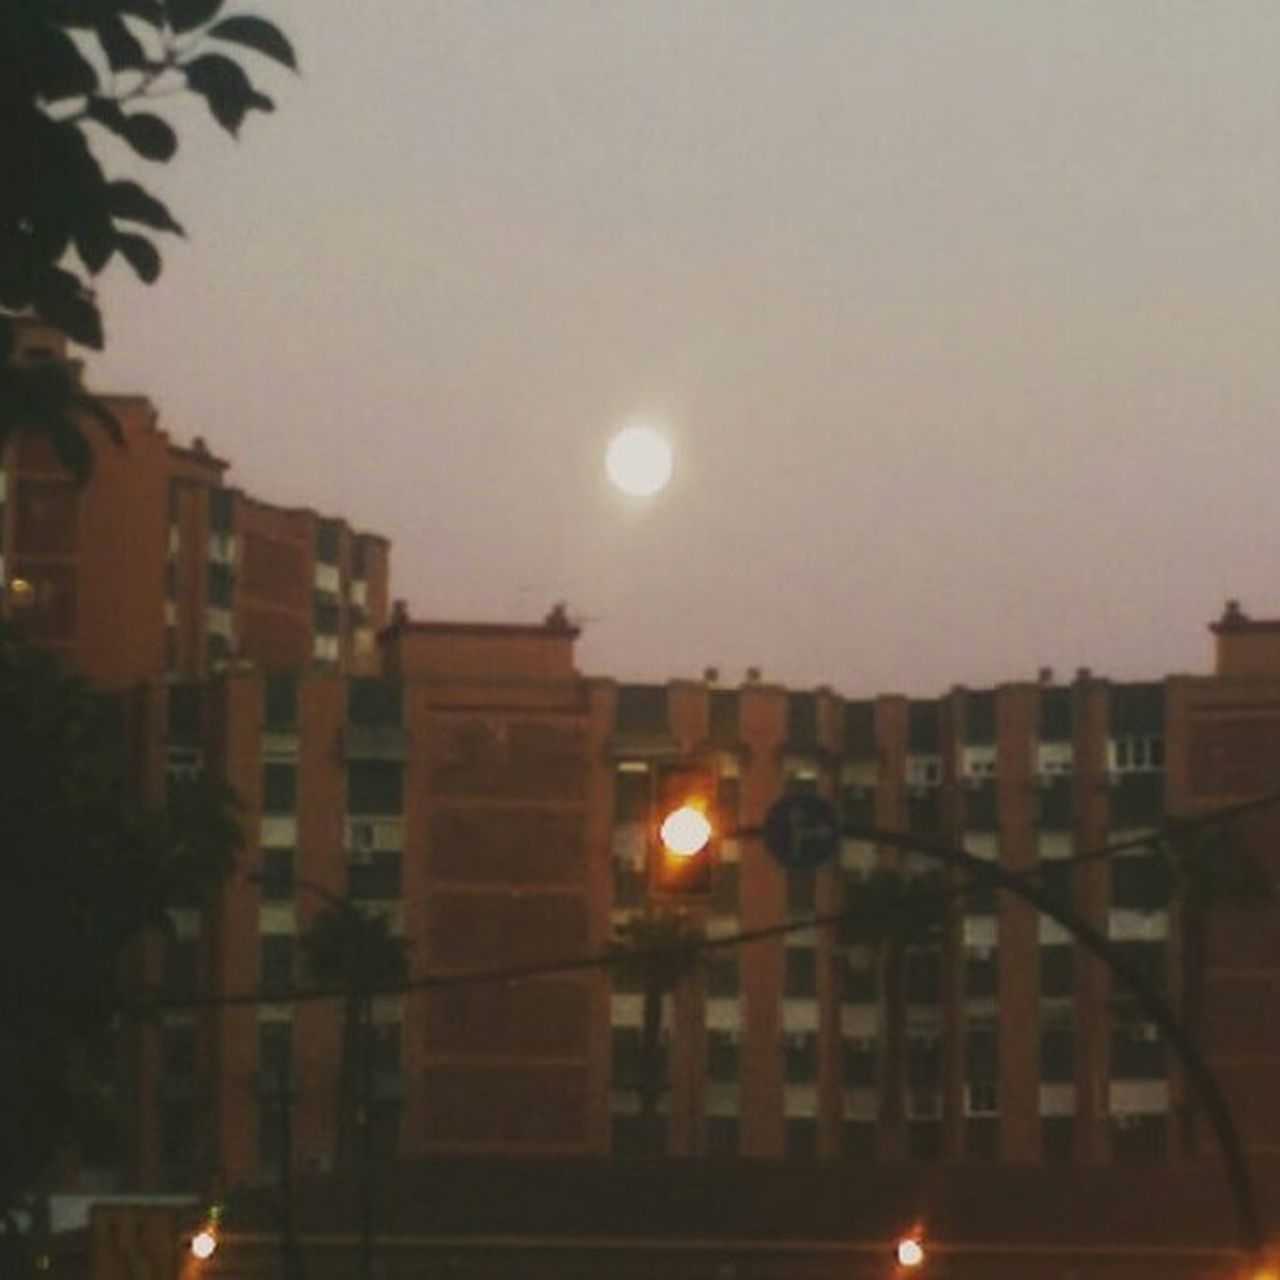 architecture, moon, building exterior, night, city, built structure, sky, illuminated, no people, sunset, outdoors, nature